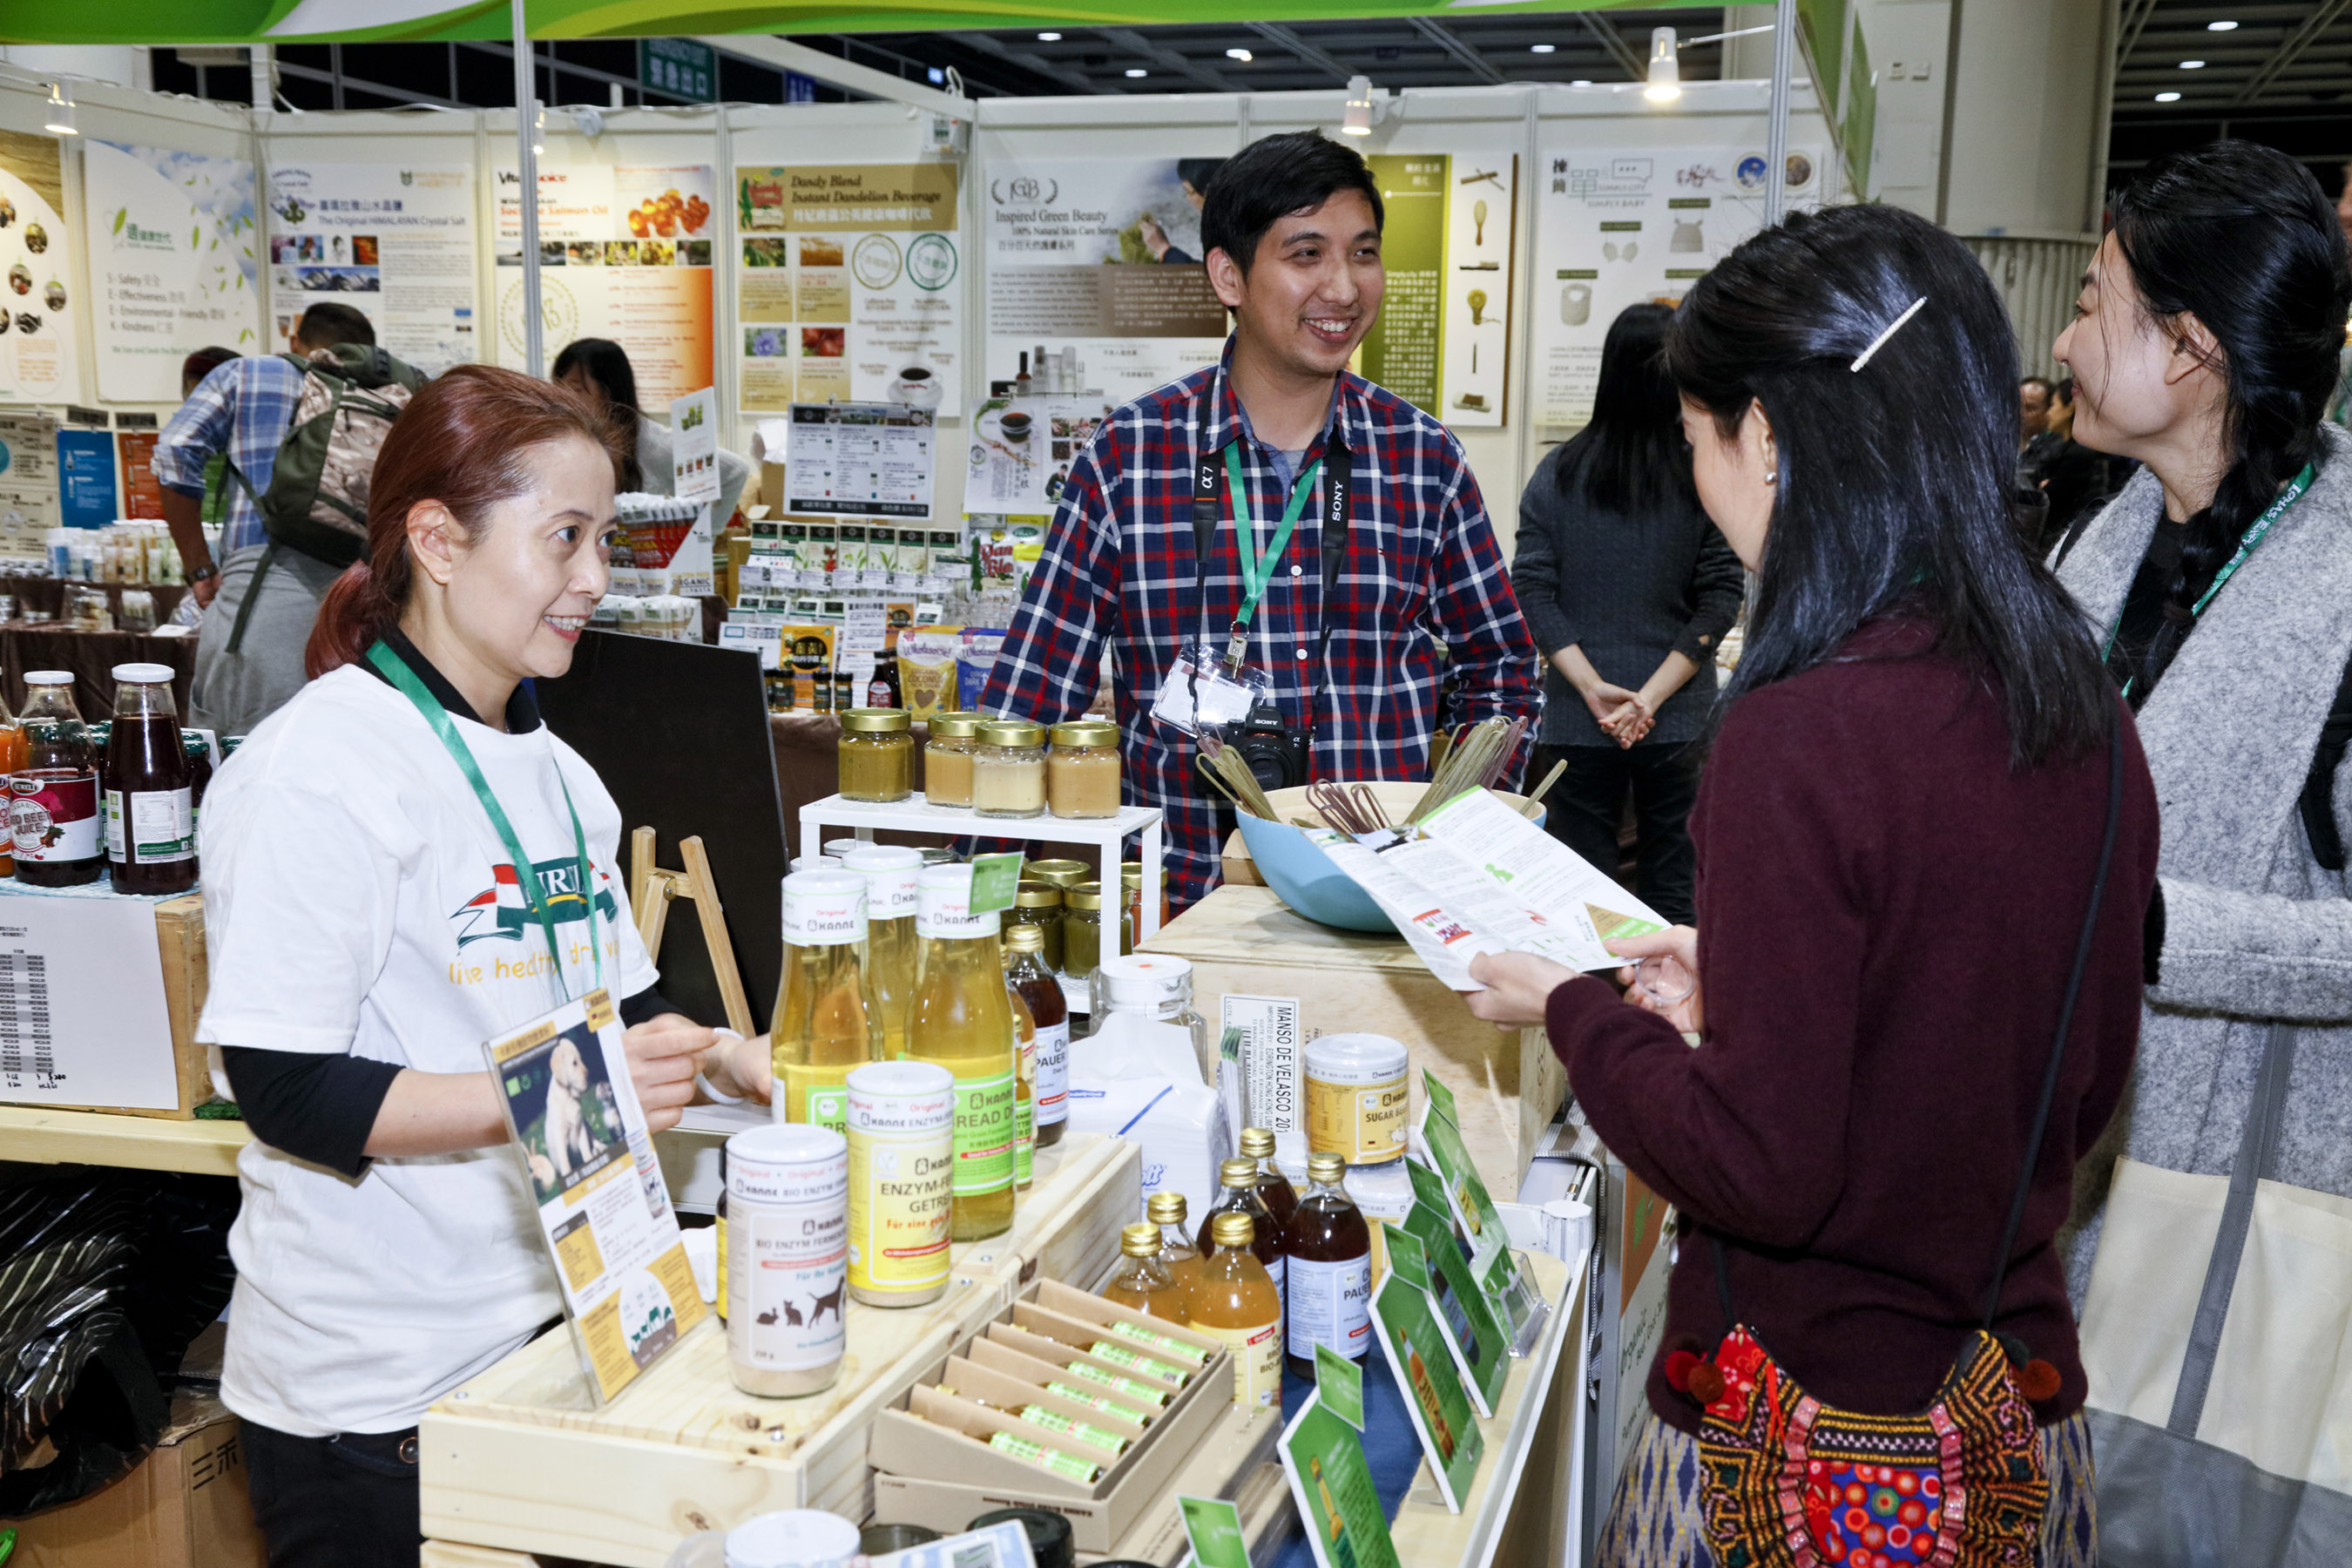 Exhibitors are introducing their natural and organic food to visitors